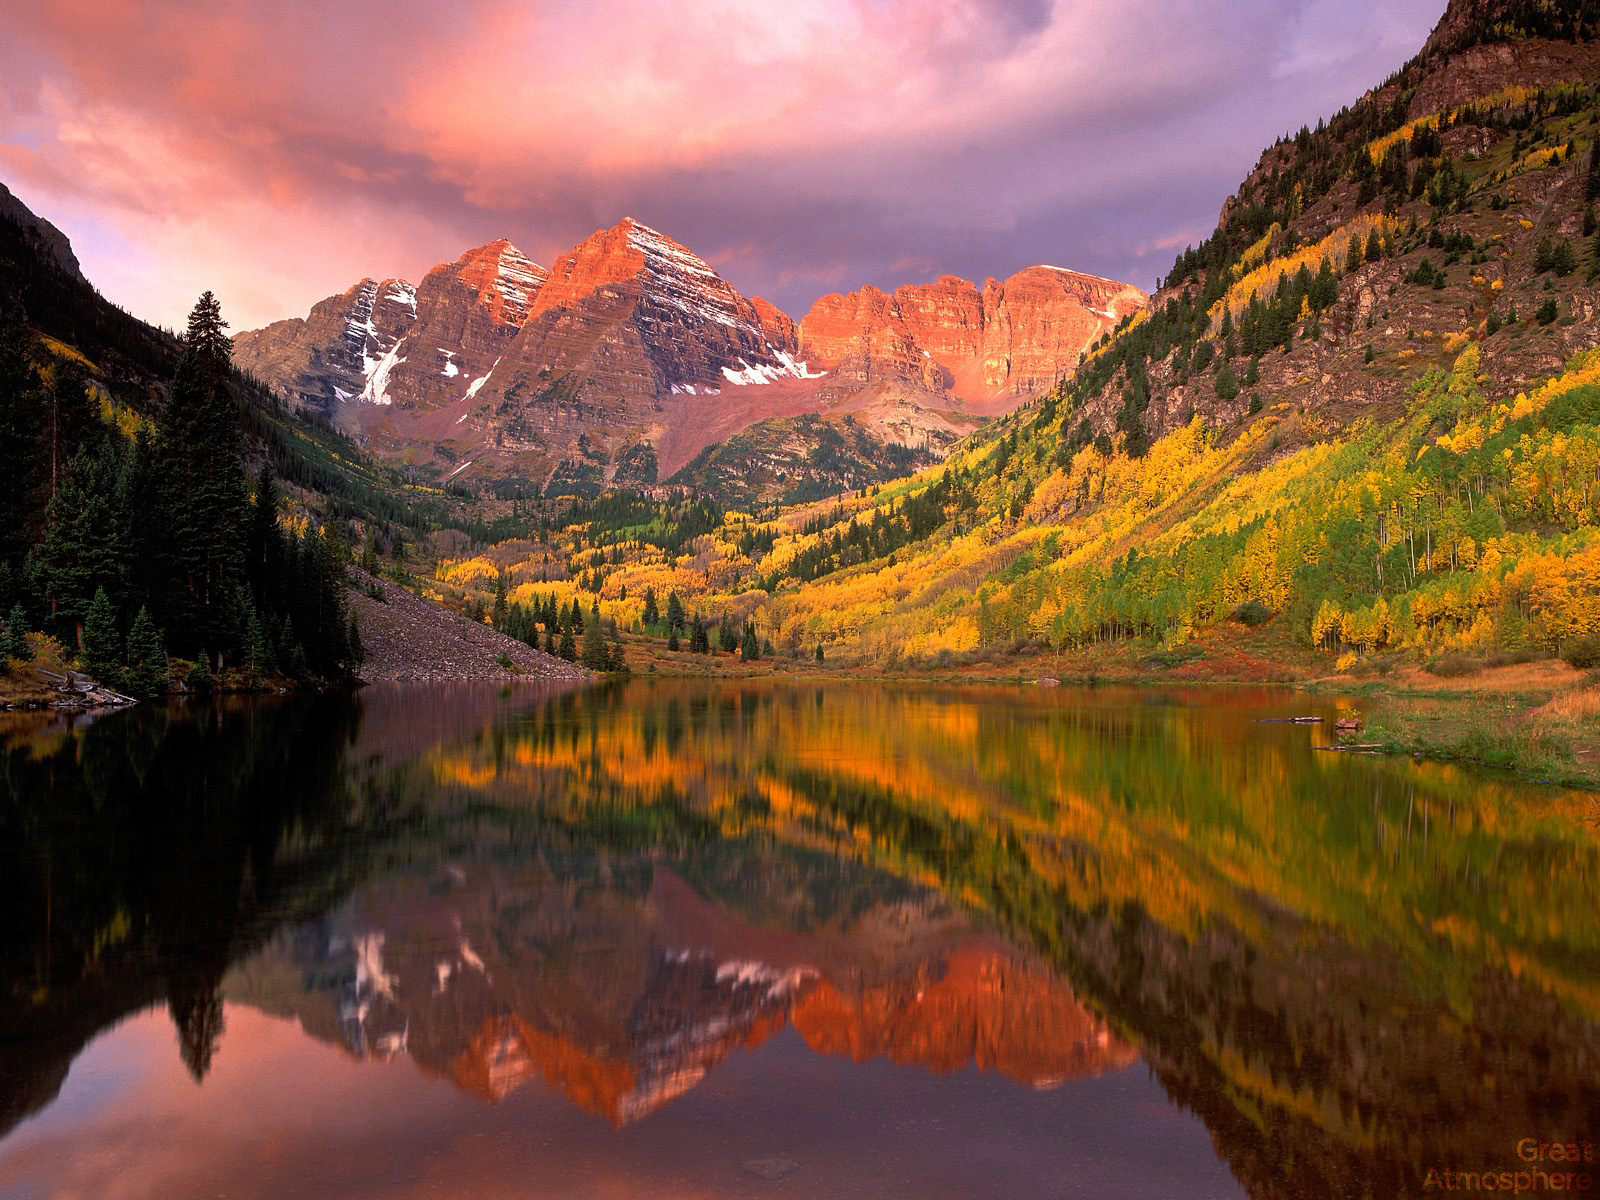 Maroon-Bells-at-Sunrise-Aspen-Colorado-amazing-view-beautiful-travel-photography-nature-landscapes-colors